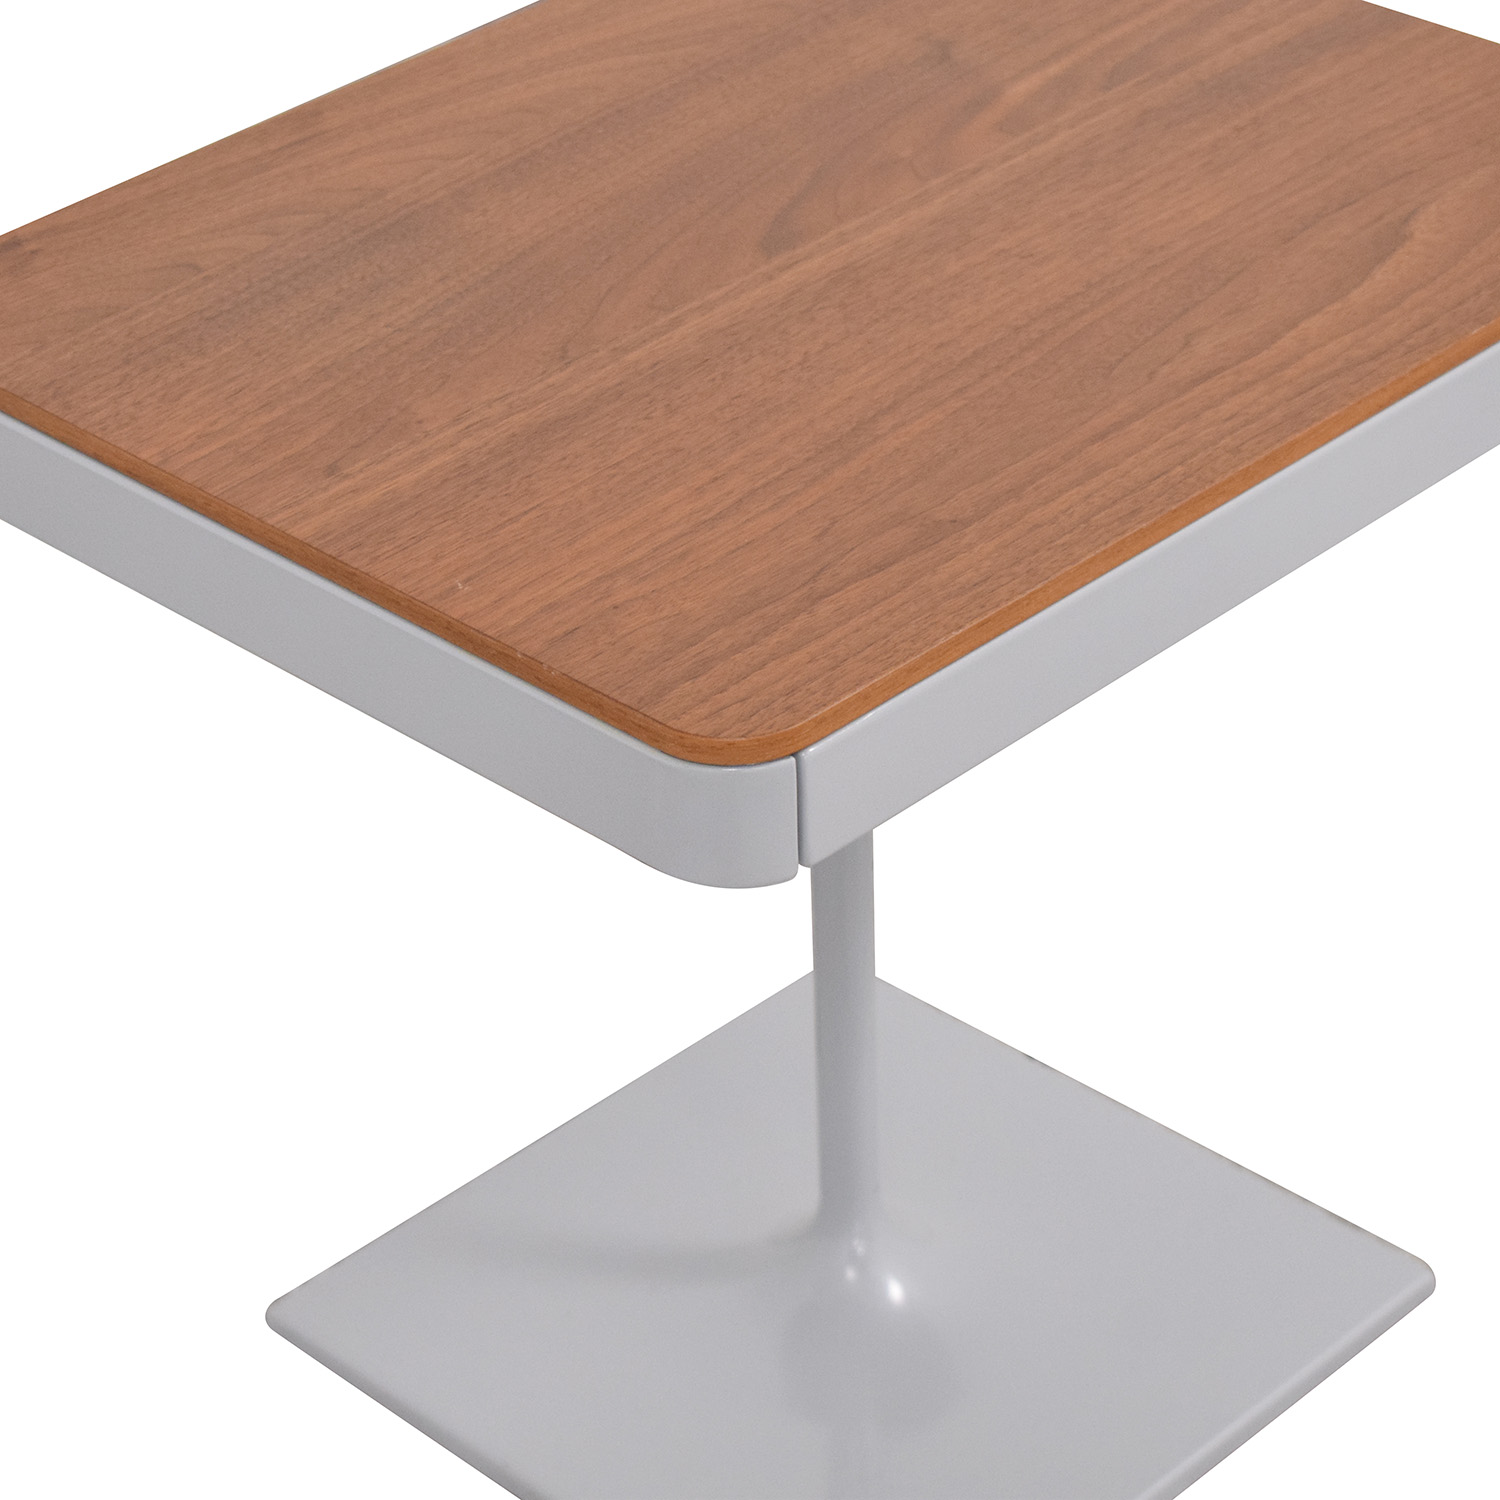 Design Within Reach Design Within Reach Min Bedside Table with Pedestal Base discount